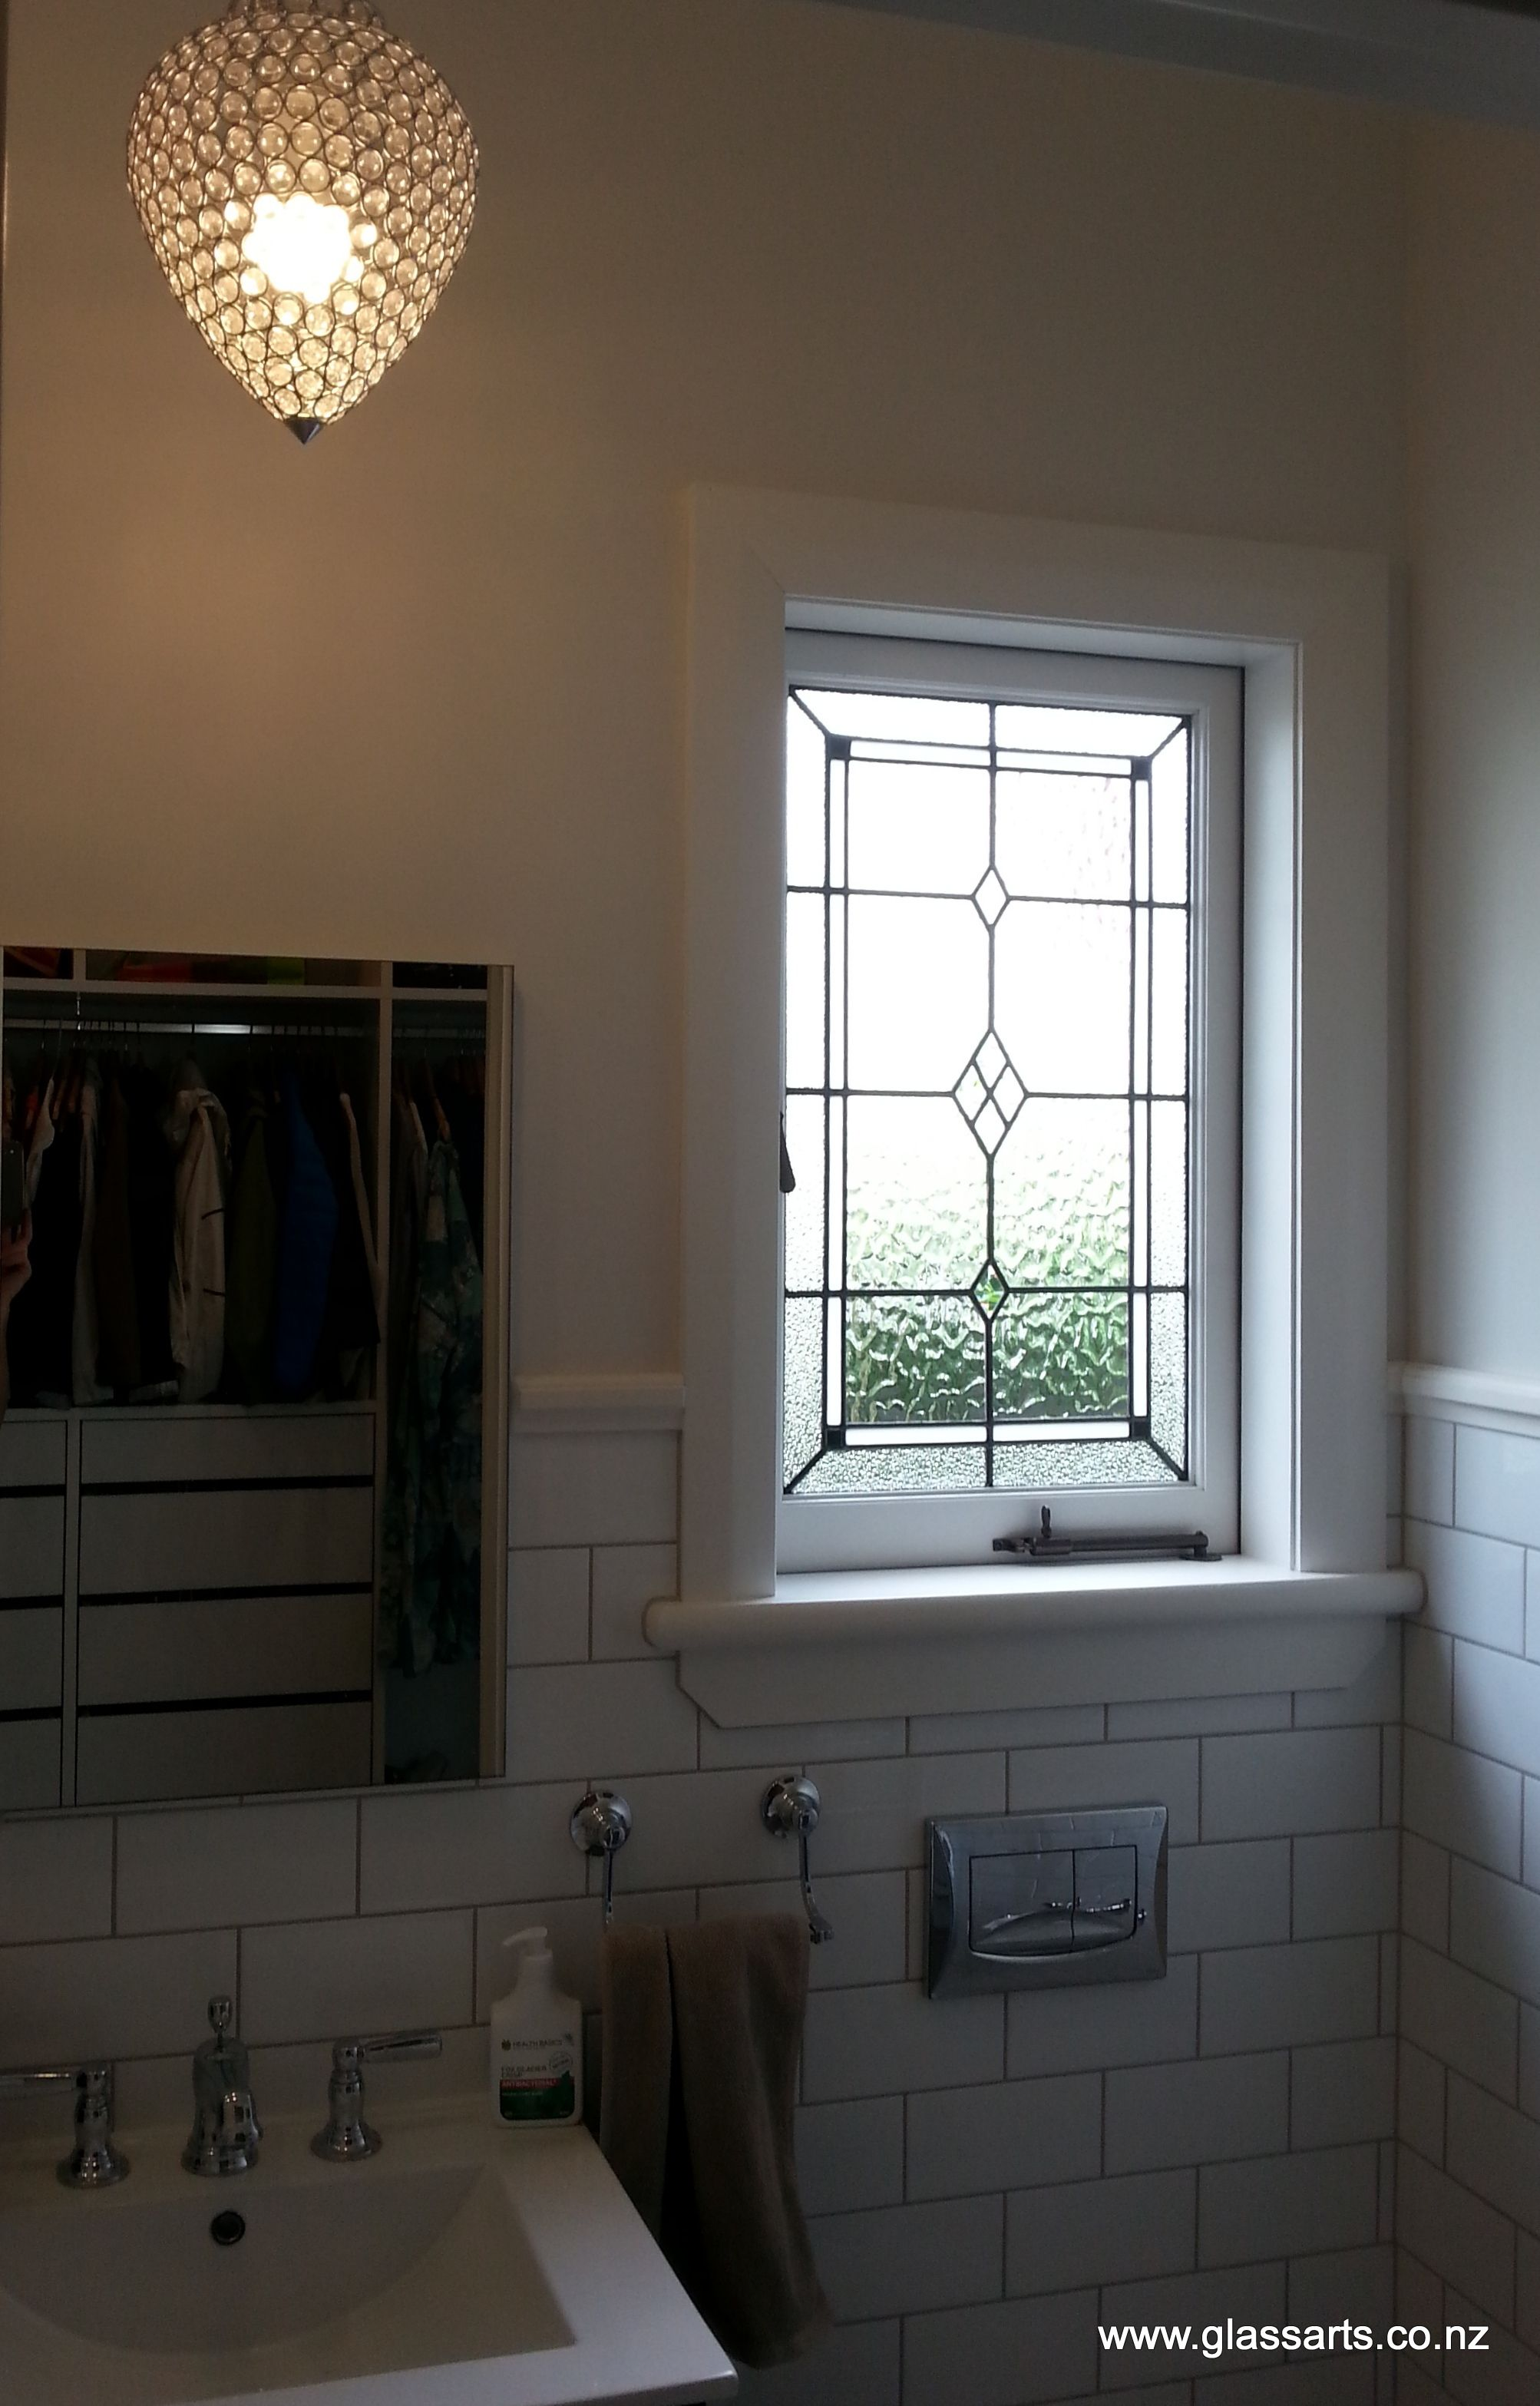 Custom stained glass window adding character to bathroom